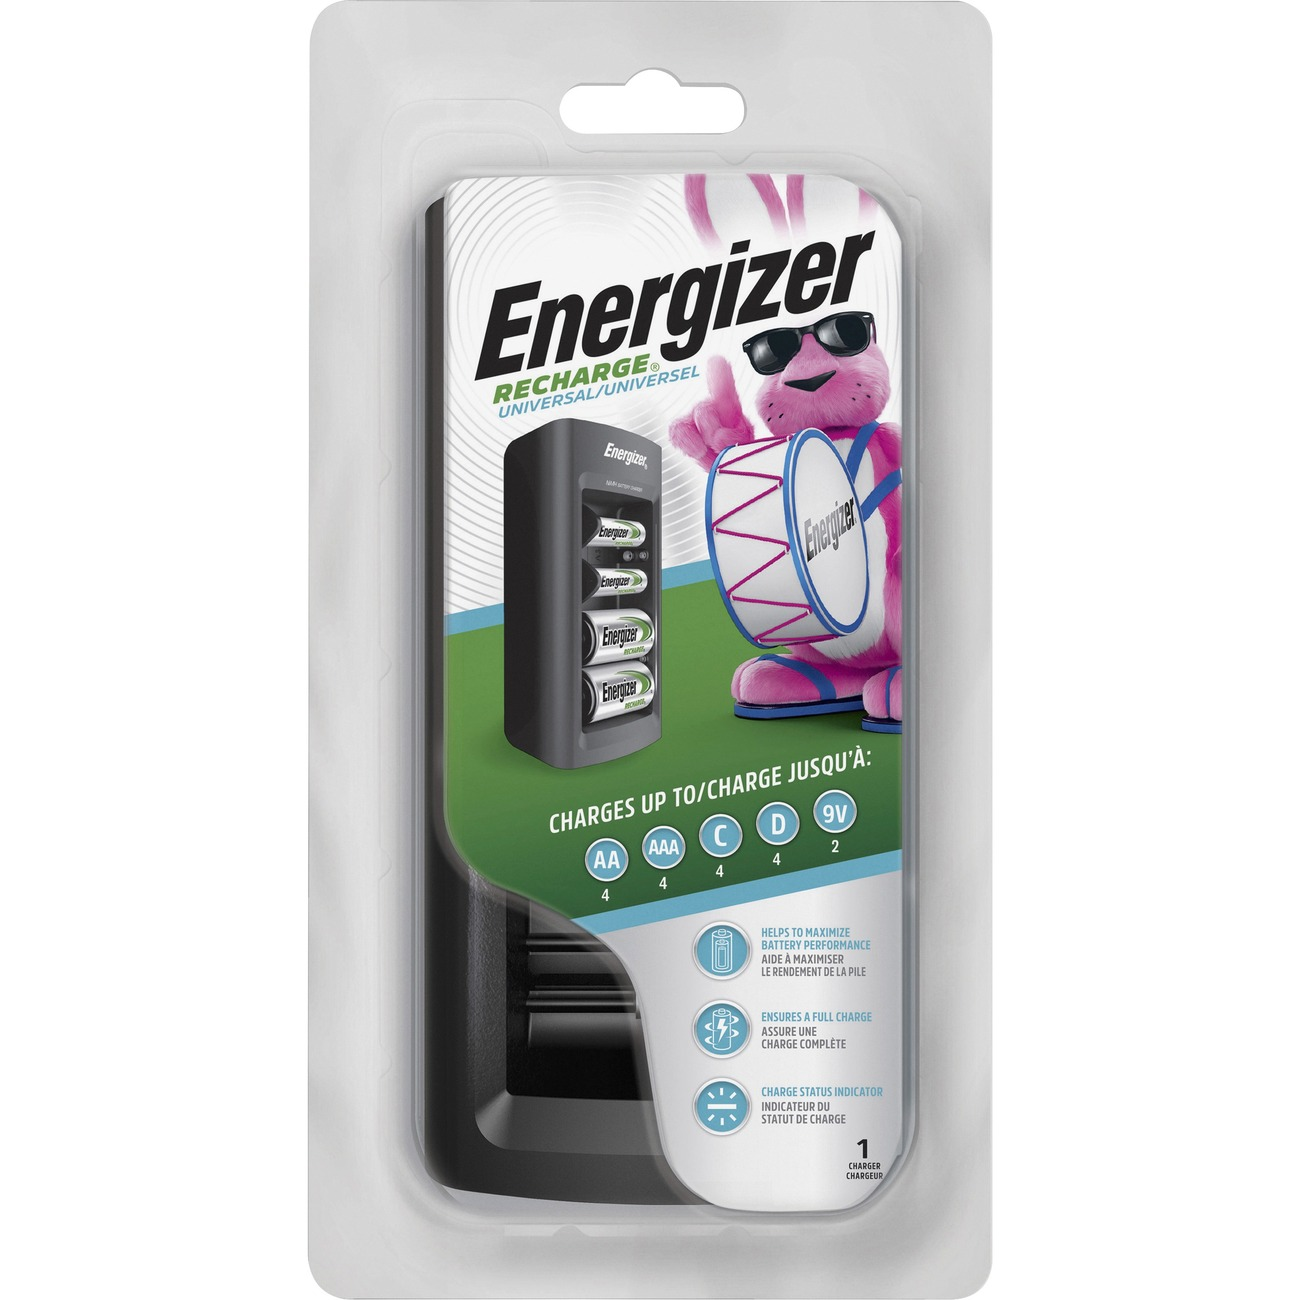 Energizer CHFC, Energizer NiMH Battery Charger, EVECHFC, EVE